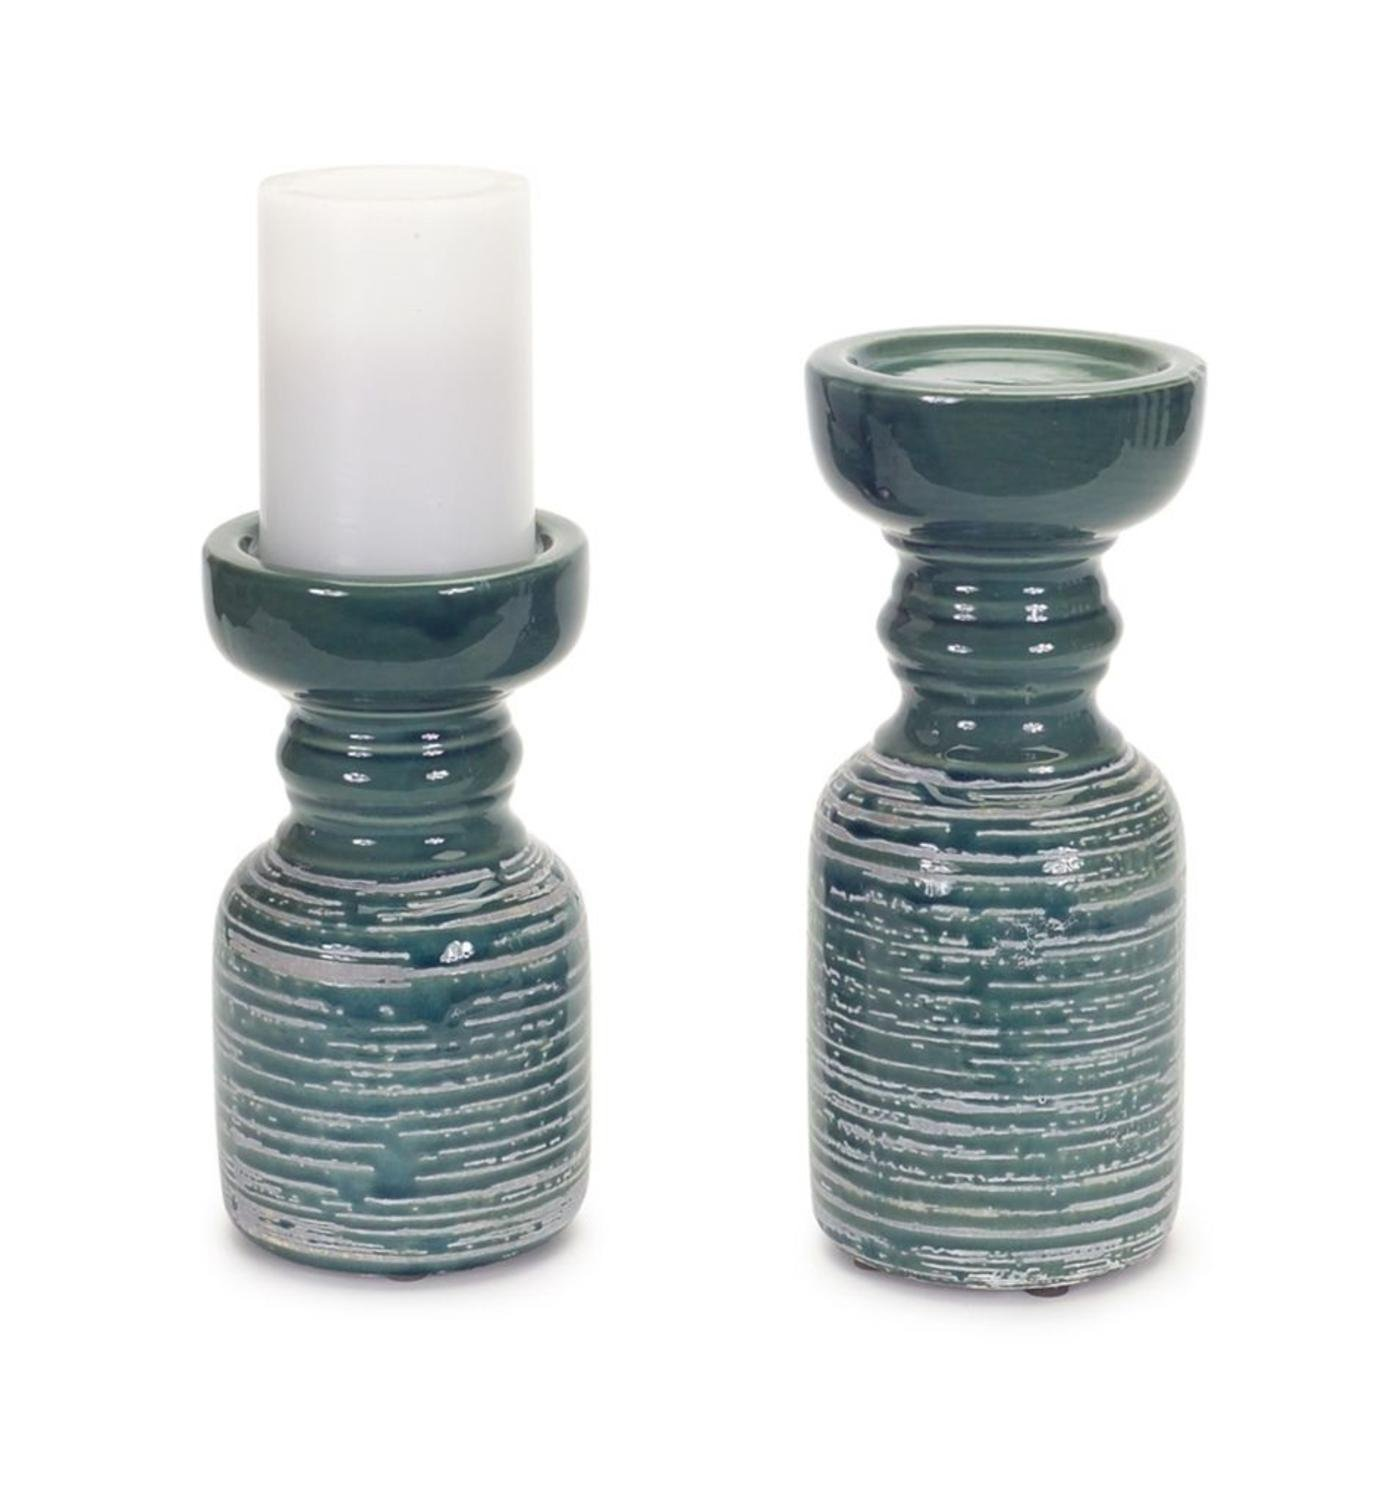 "Set of 2 Exquisite White and Dark Turquoise Clay Pillar Candle Holders 9.75"" by Melrose"